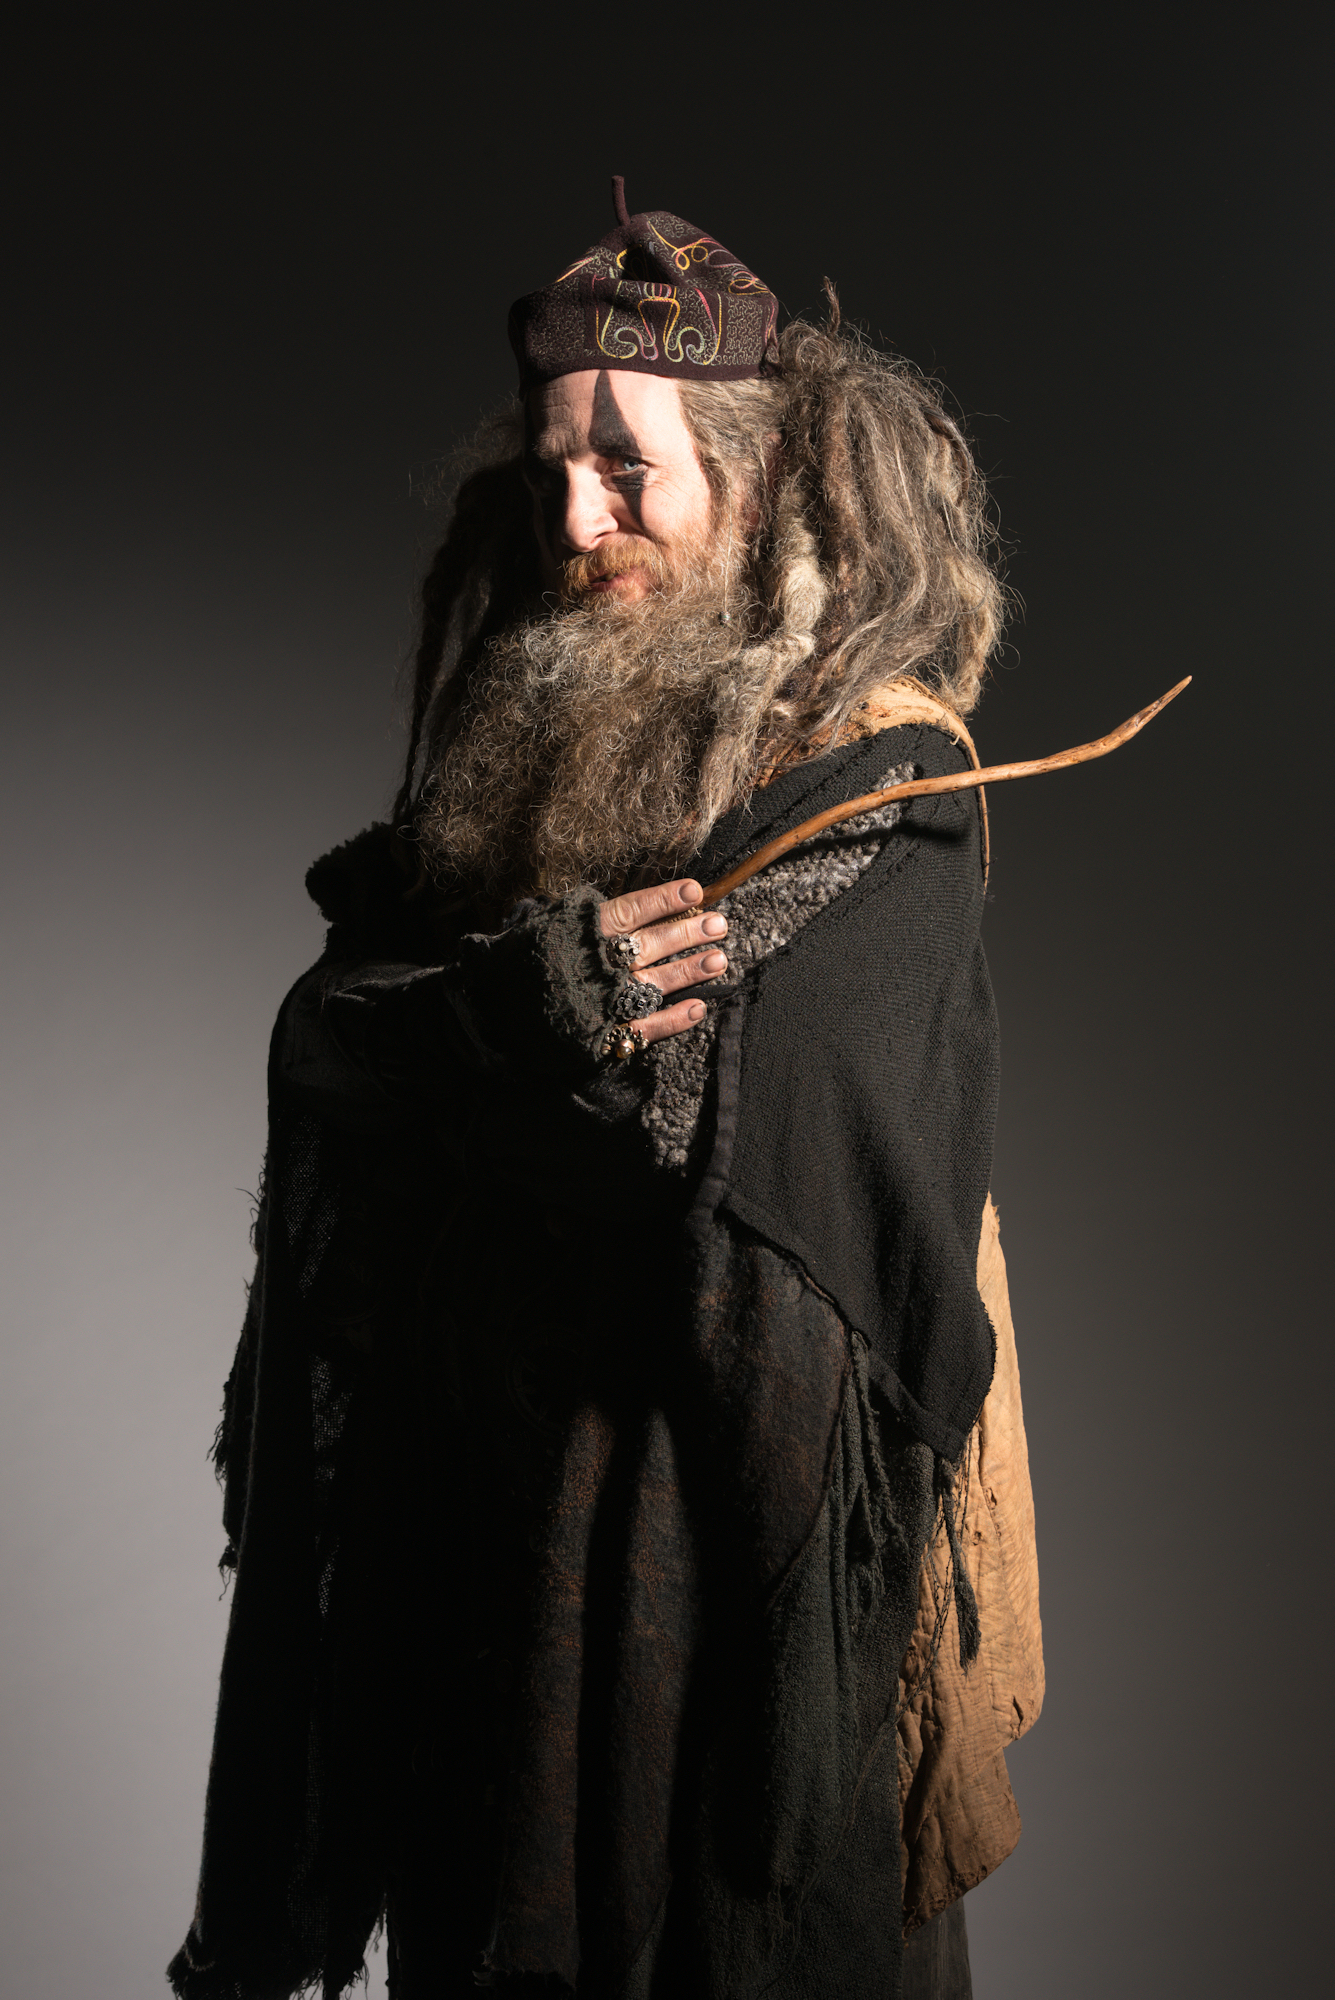 Zapped S2Picture Shows: Paul Kaye as Howell